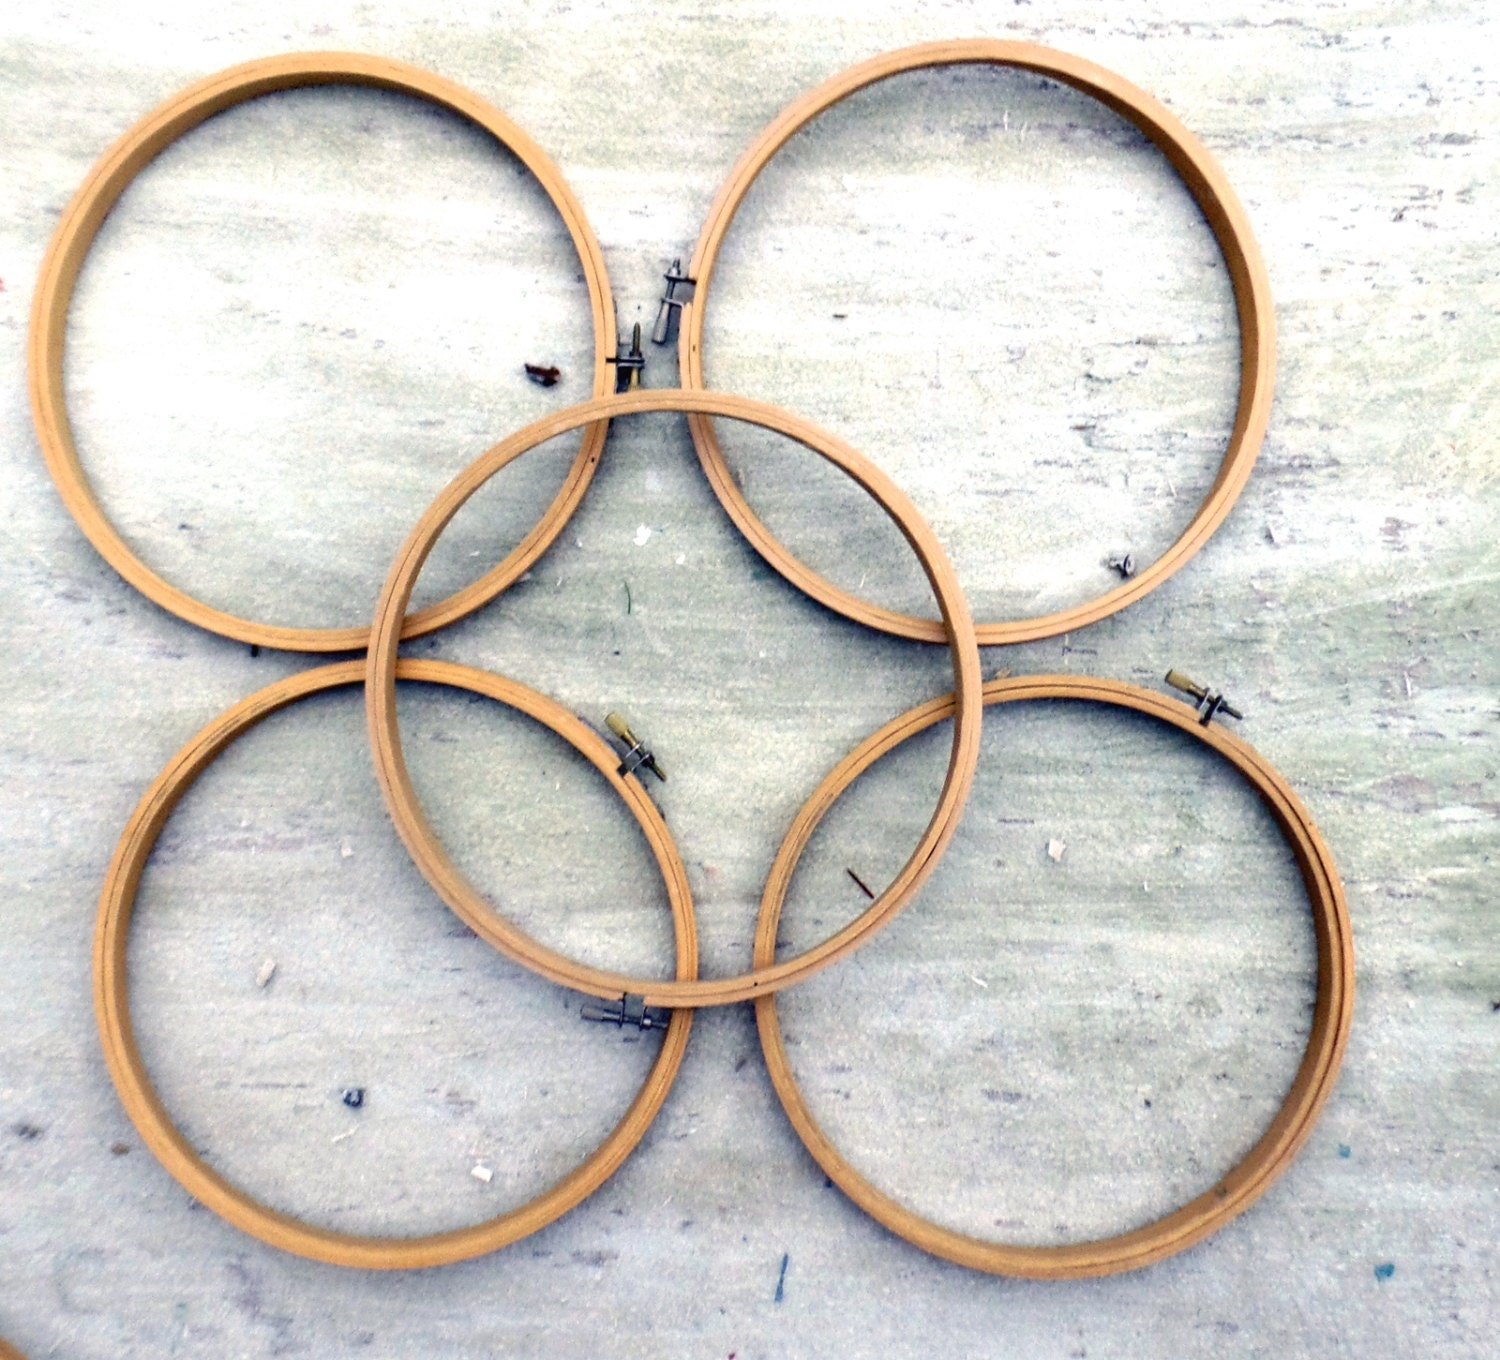 Five Embroidery Hoops Bamboo Tambour Frame 9 Inch Hoops